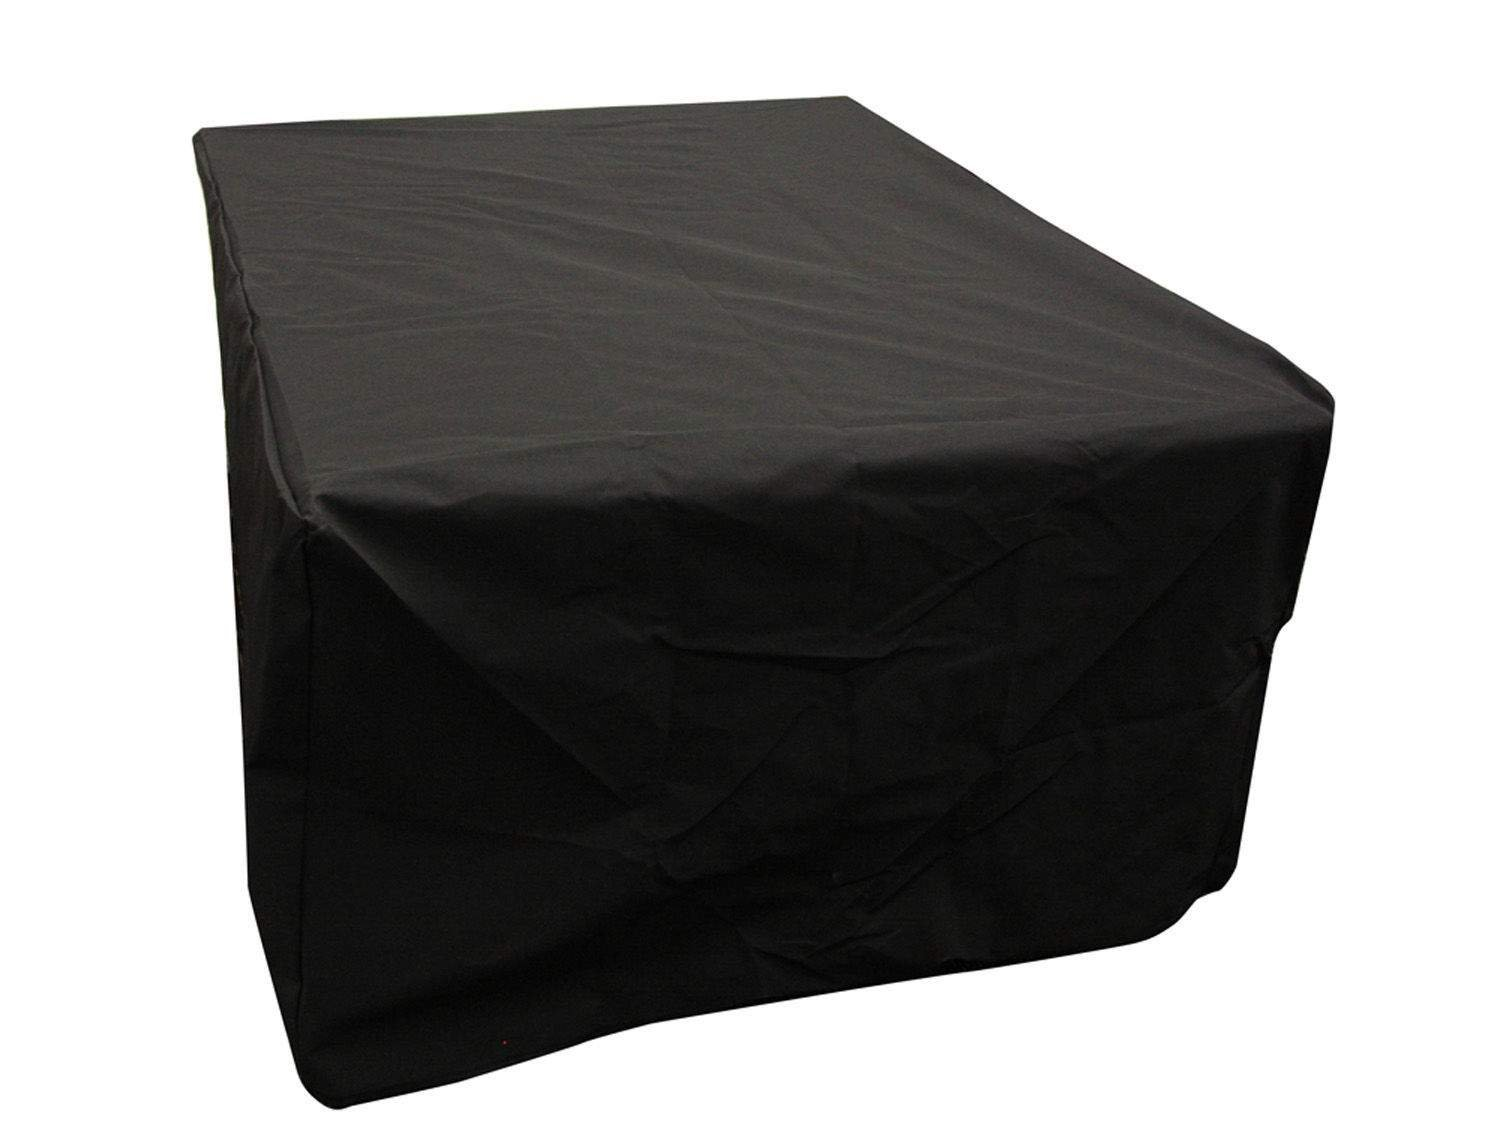 Outdoor Great Room CVRCF2737 Rectangle Vinyl Cover Providence by The Outdoor GreatRoom Company